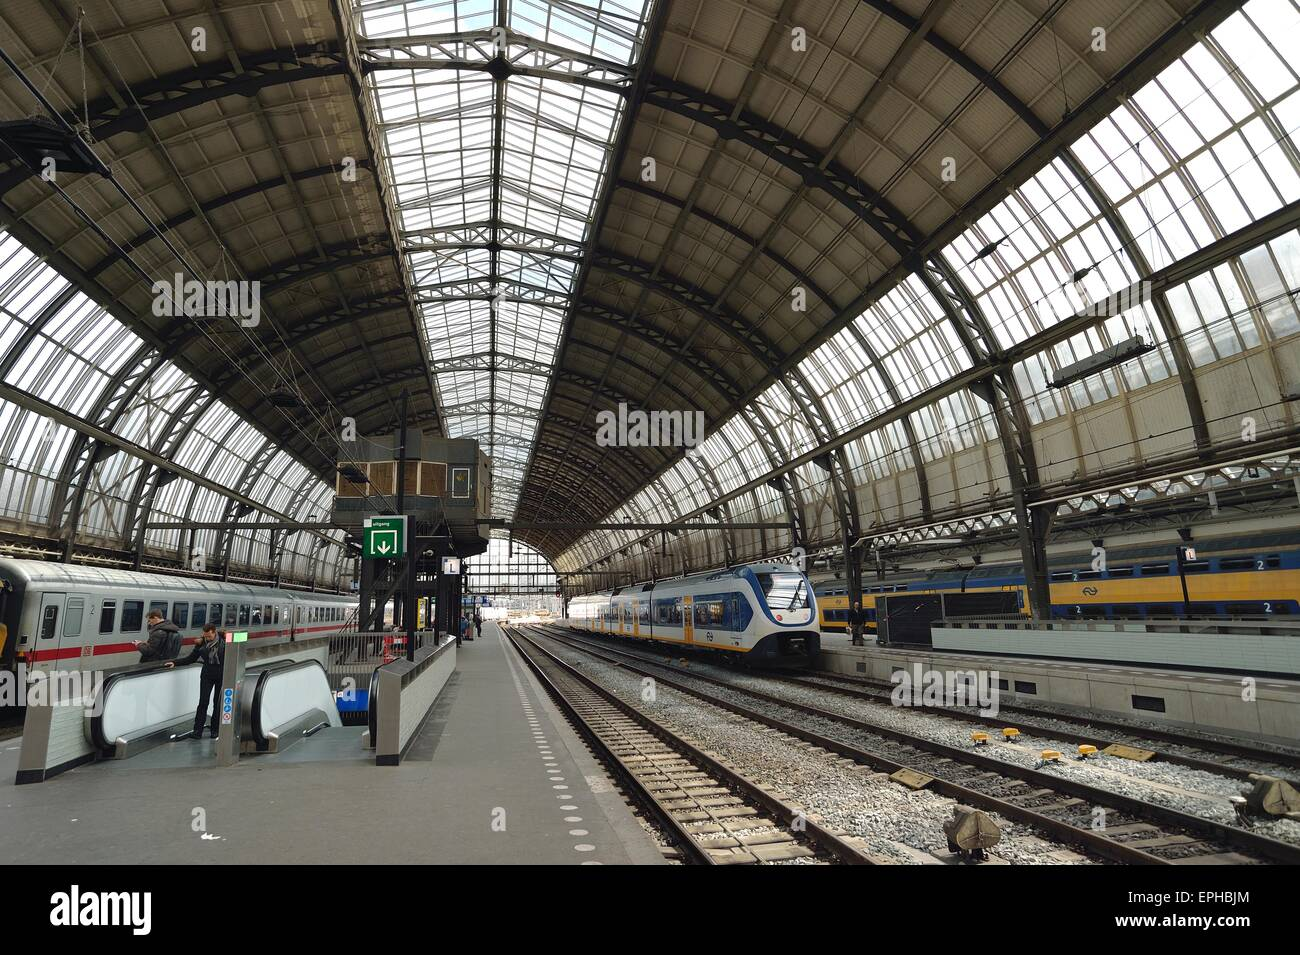 Busy with Trains inside Amsterdam Central Station - Stock Image